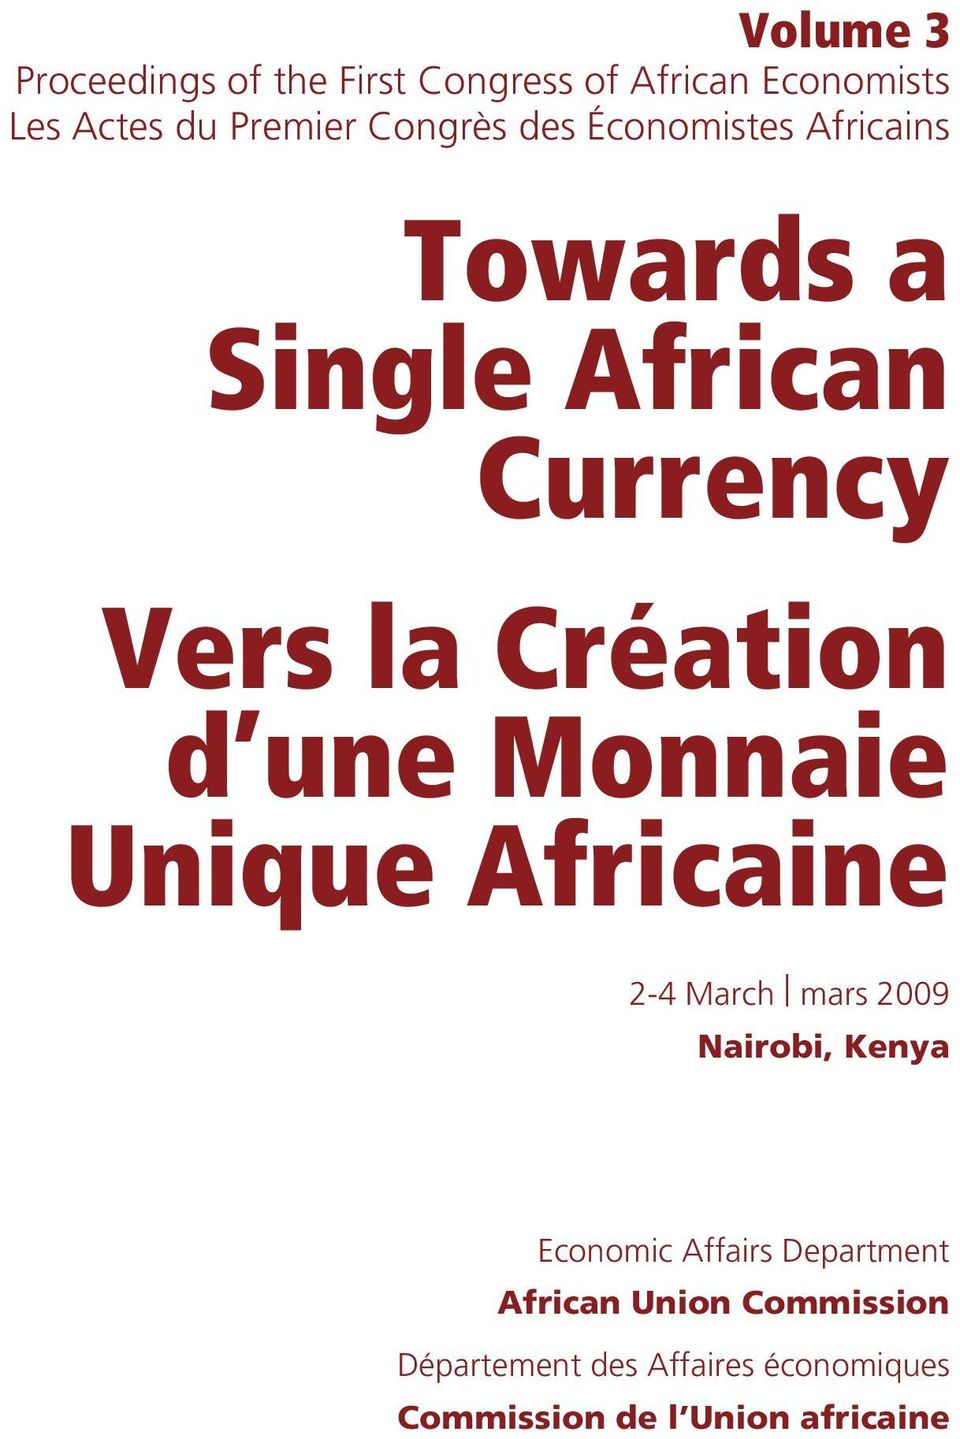 une Monnaie Unique Africaine 2-4 March mars 29 Nairobi, Kenya Economic Affairs